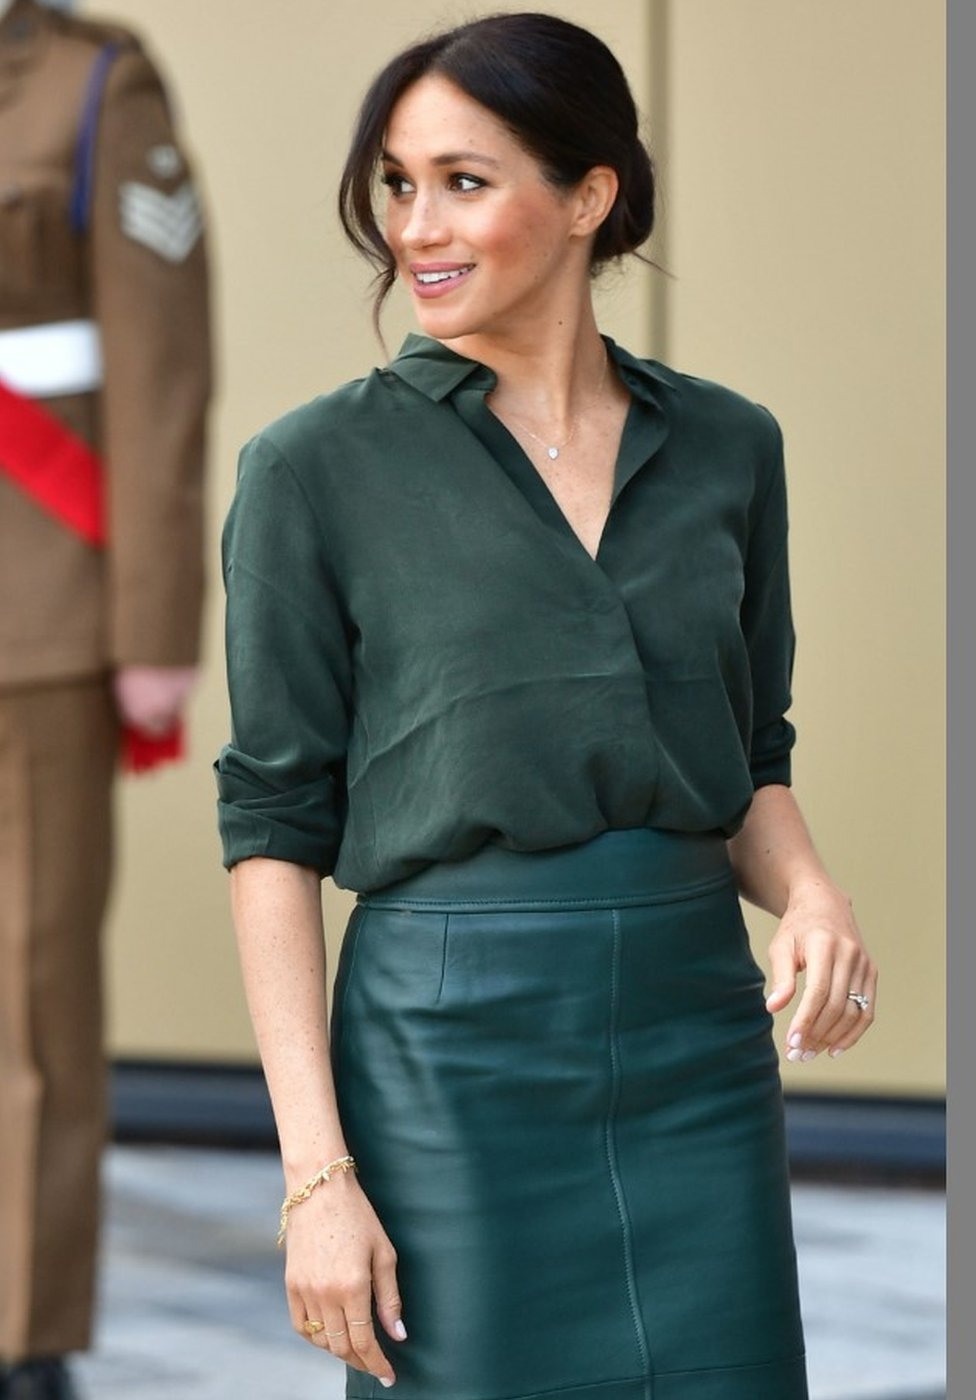 The Duchess of Sussex arriving at the University of Chichester in Bognor Regis